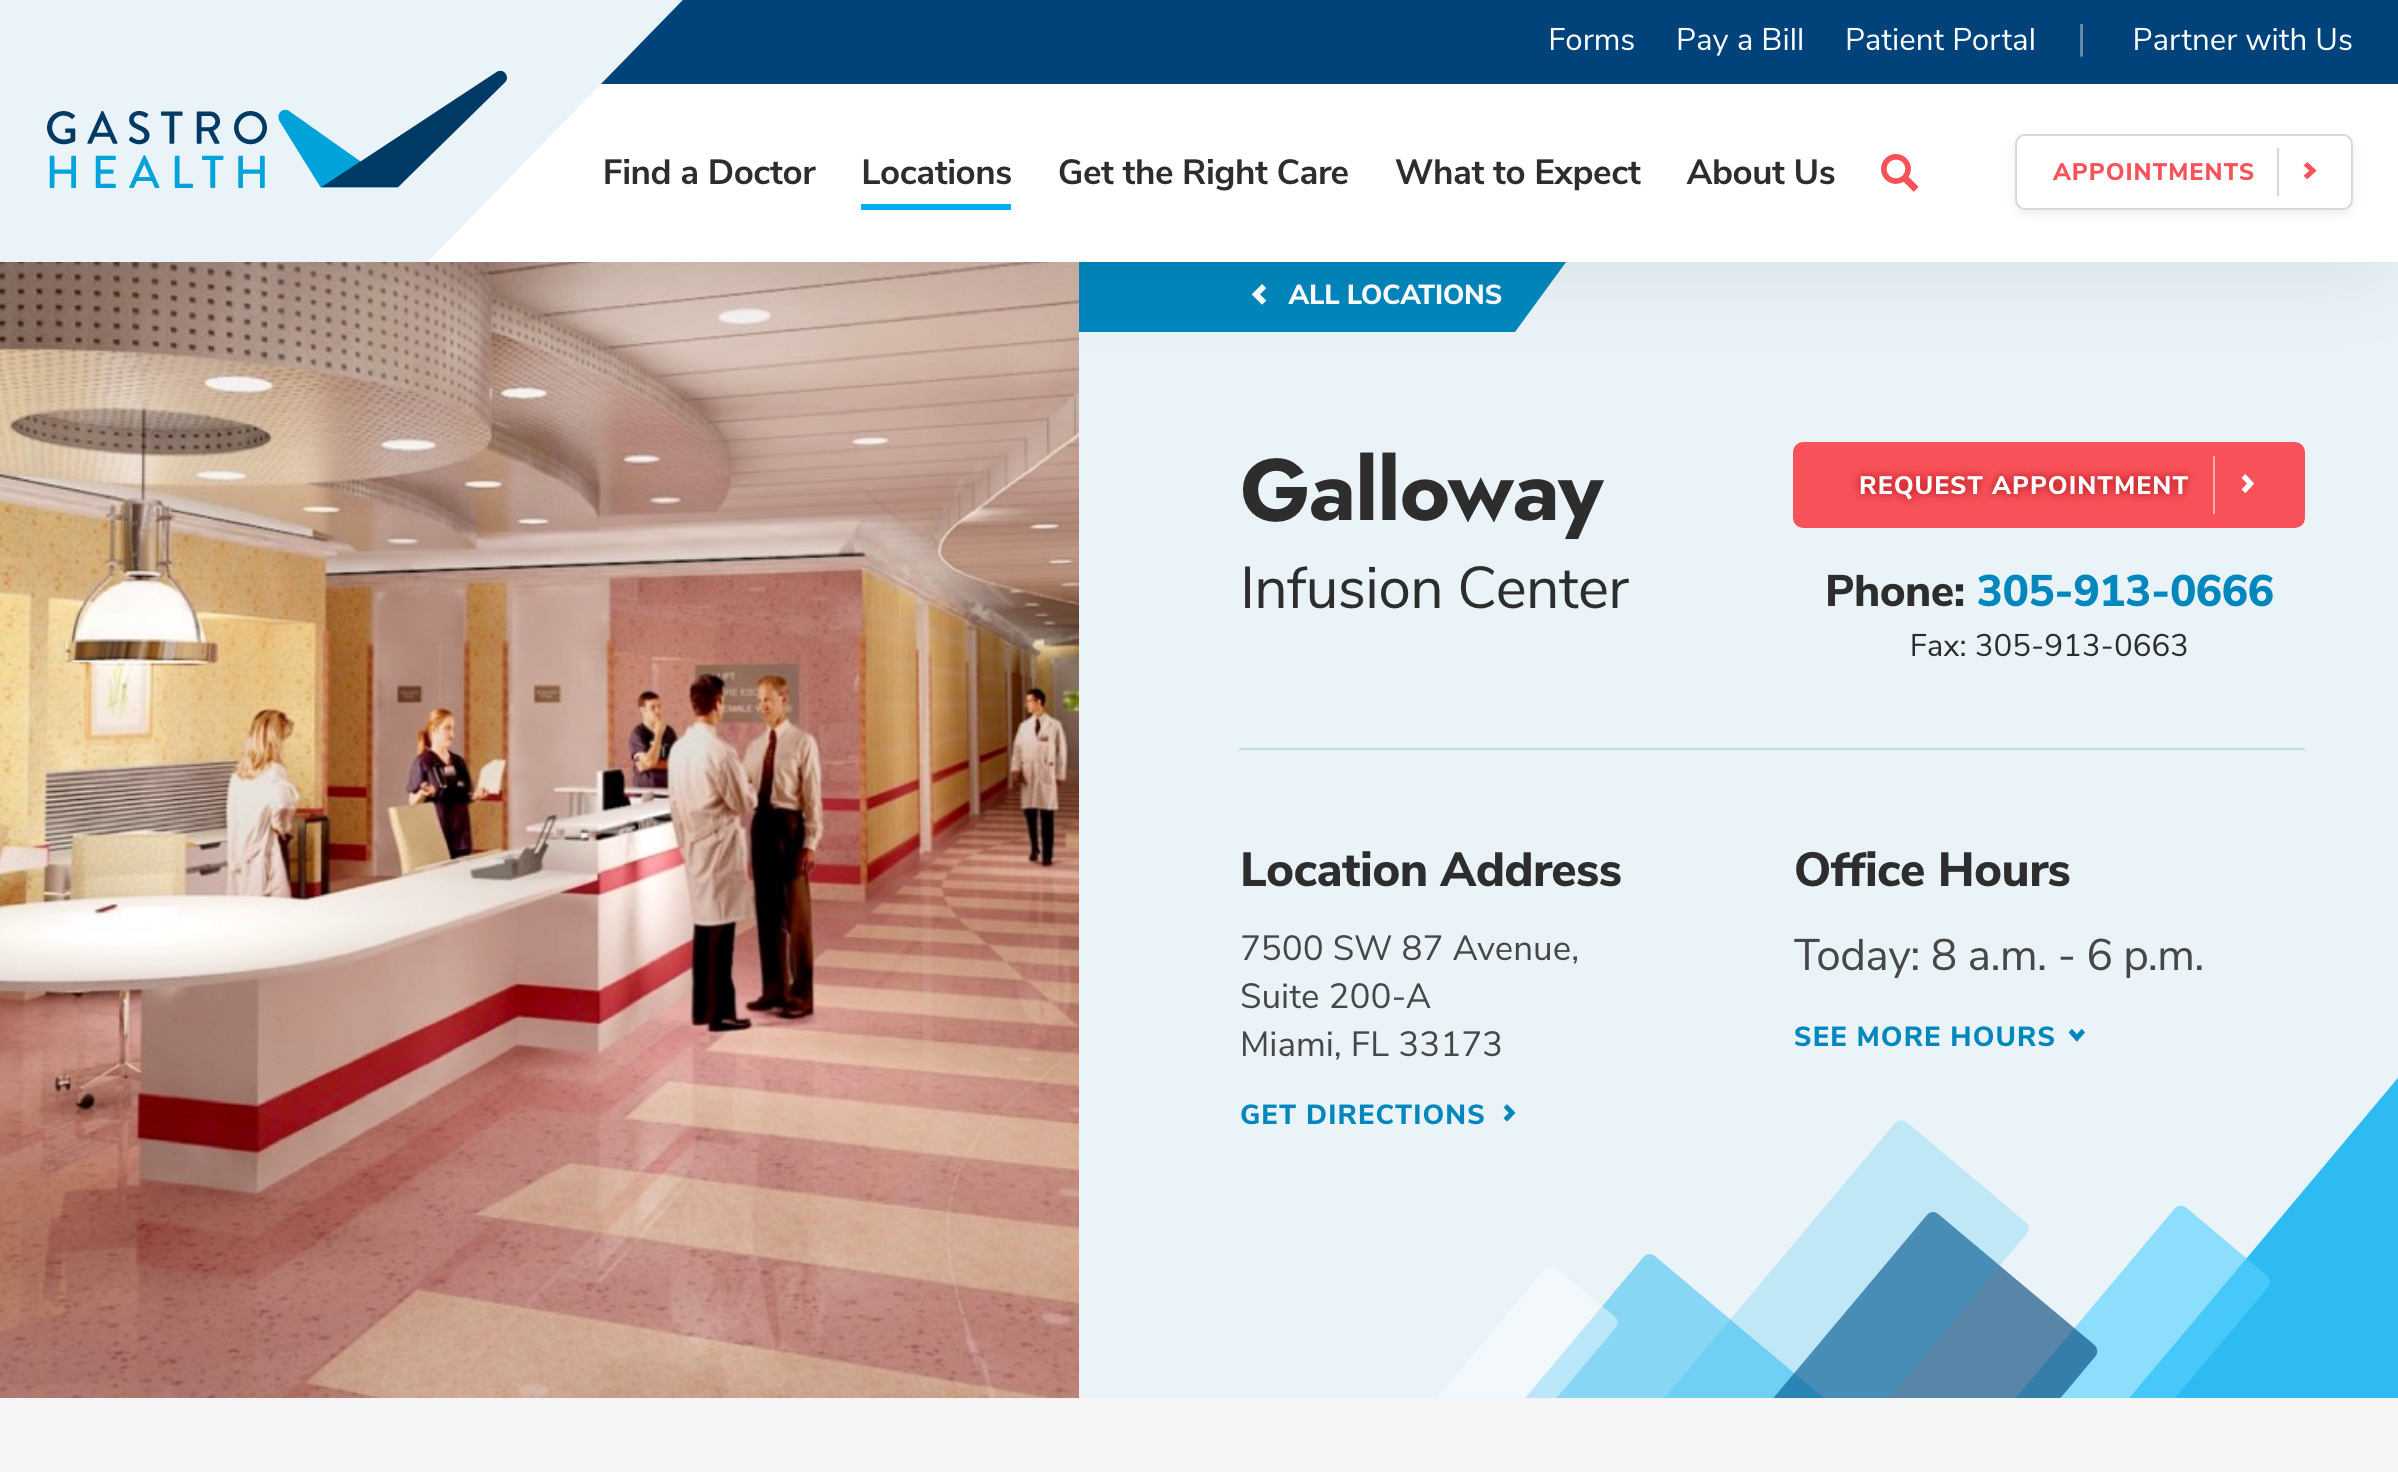 Screenshot of Gastro Health Galloway Infusion Center location page